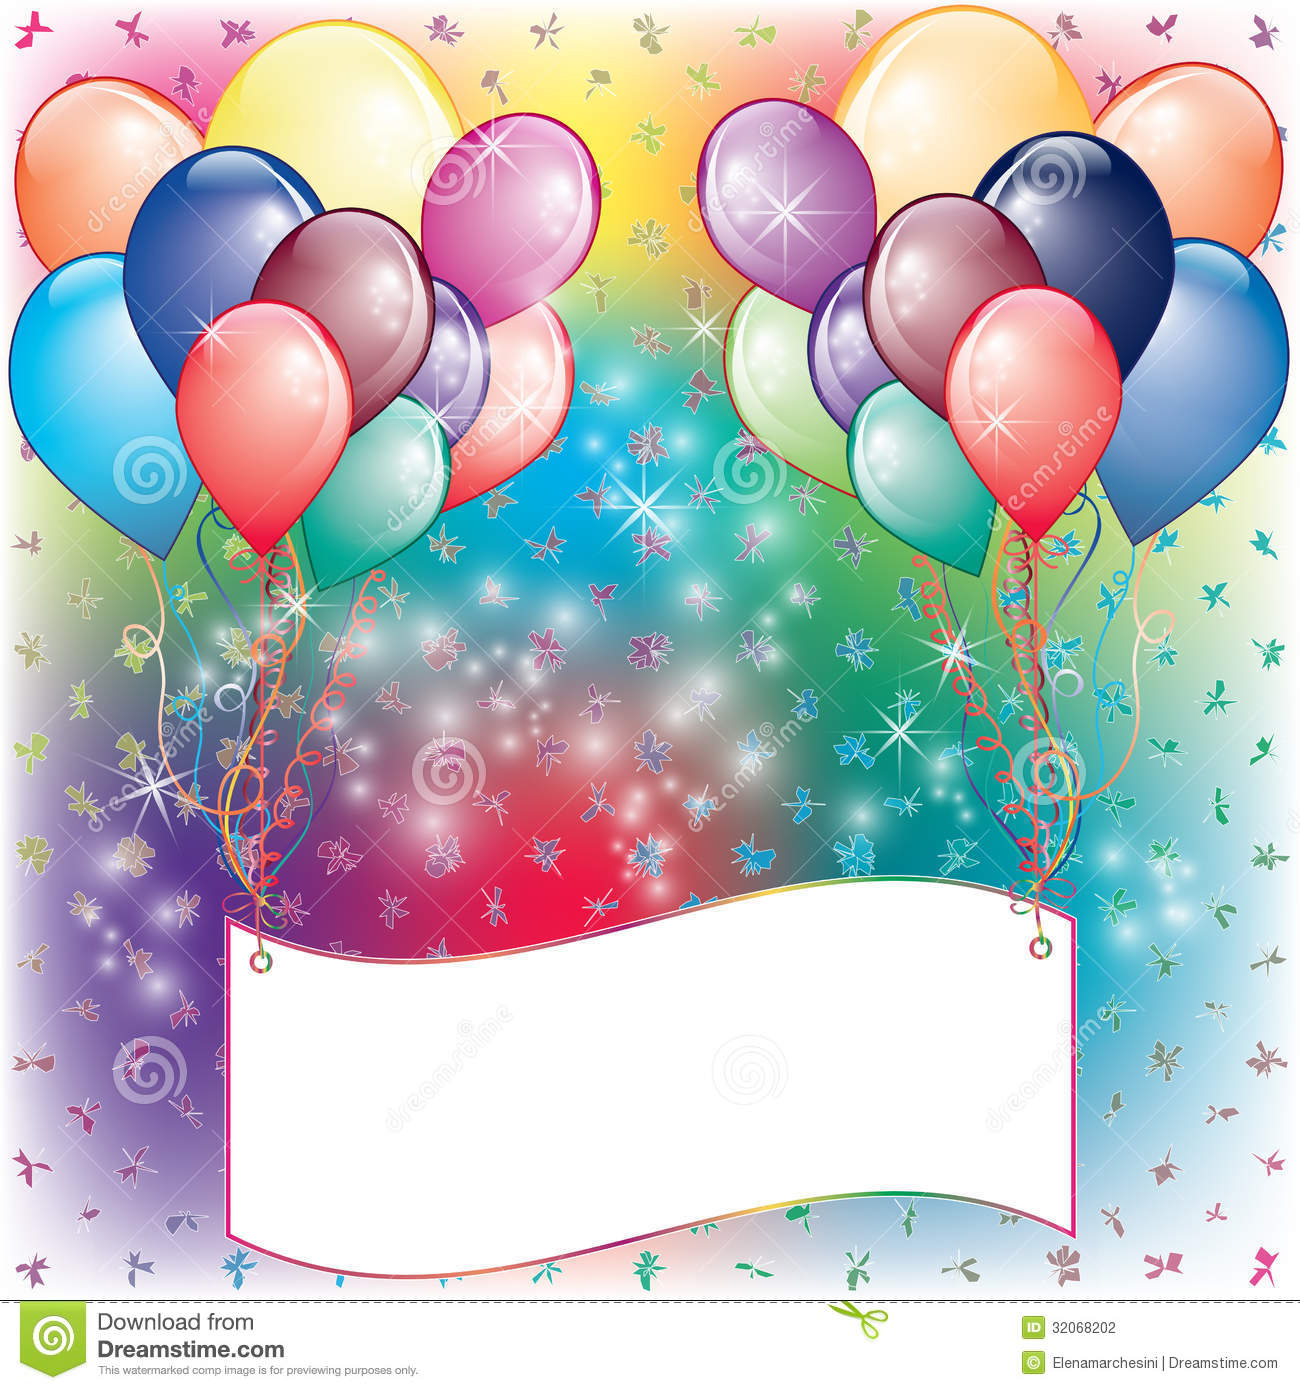 Balloons Party Invitation Card Stock Photography - Image: 32068202